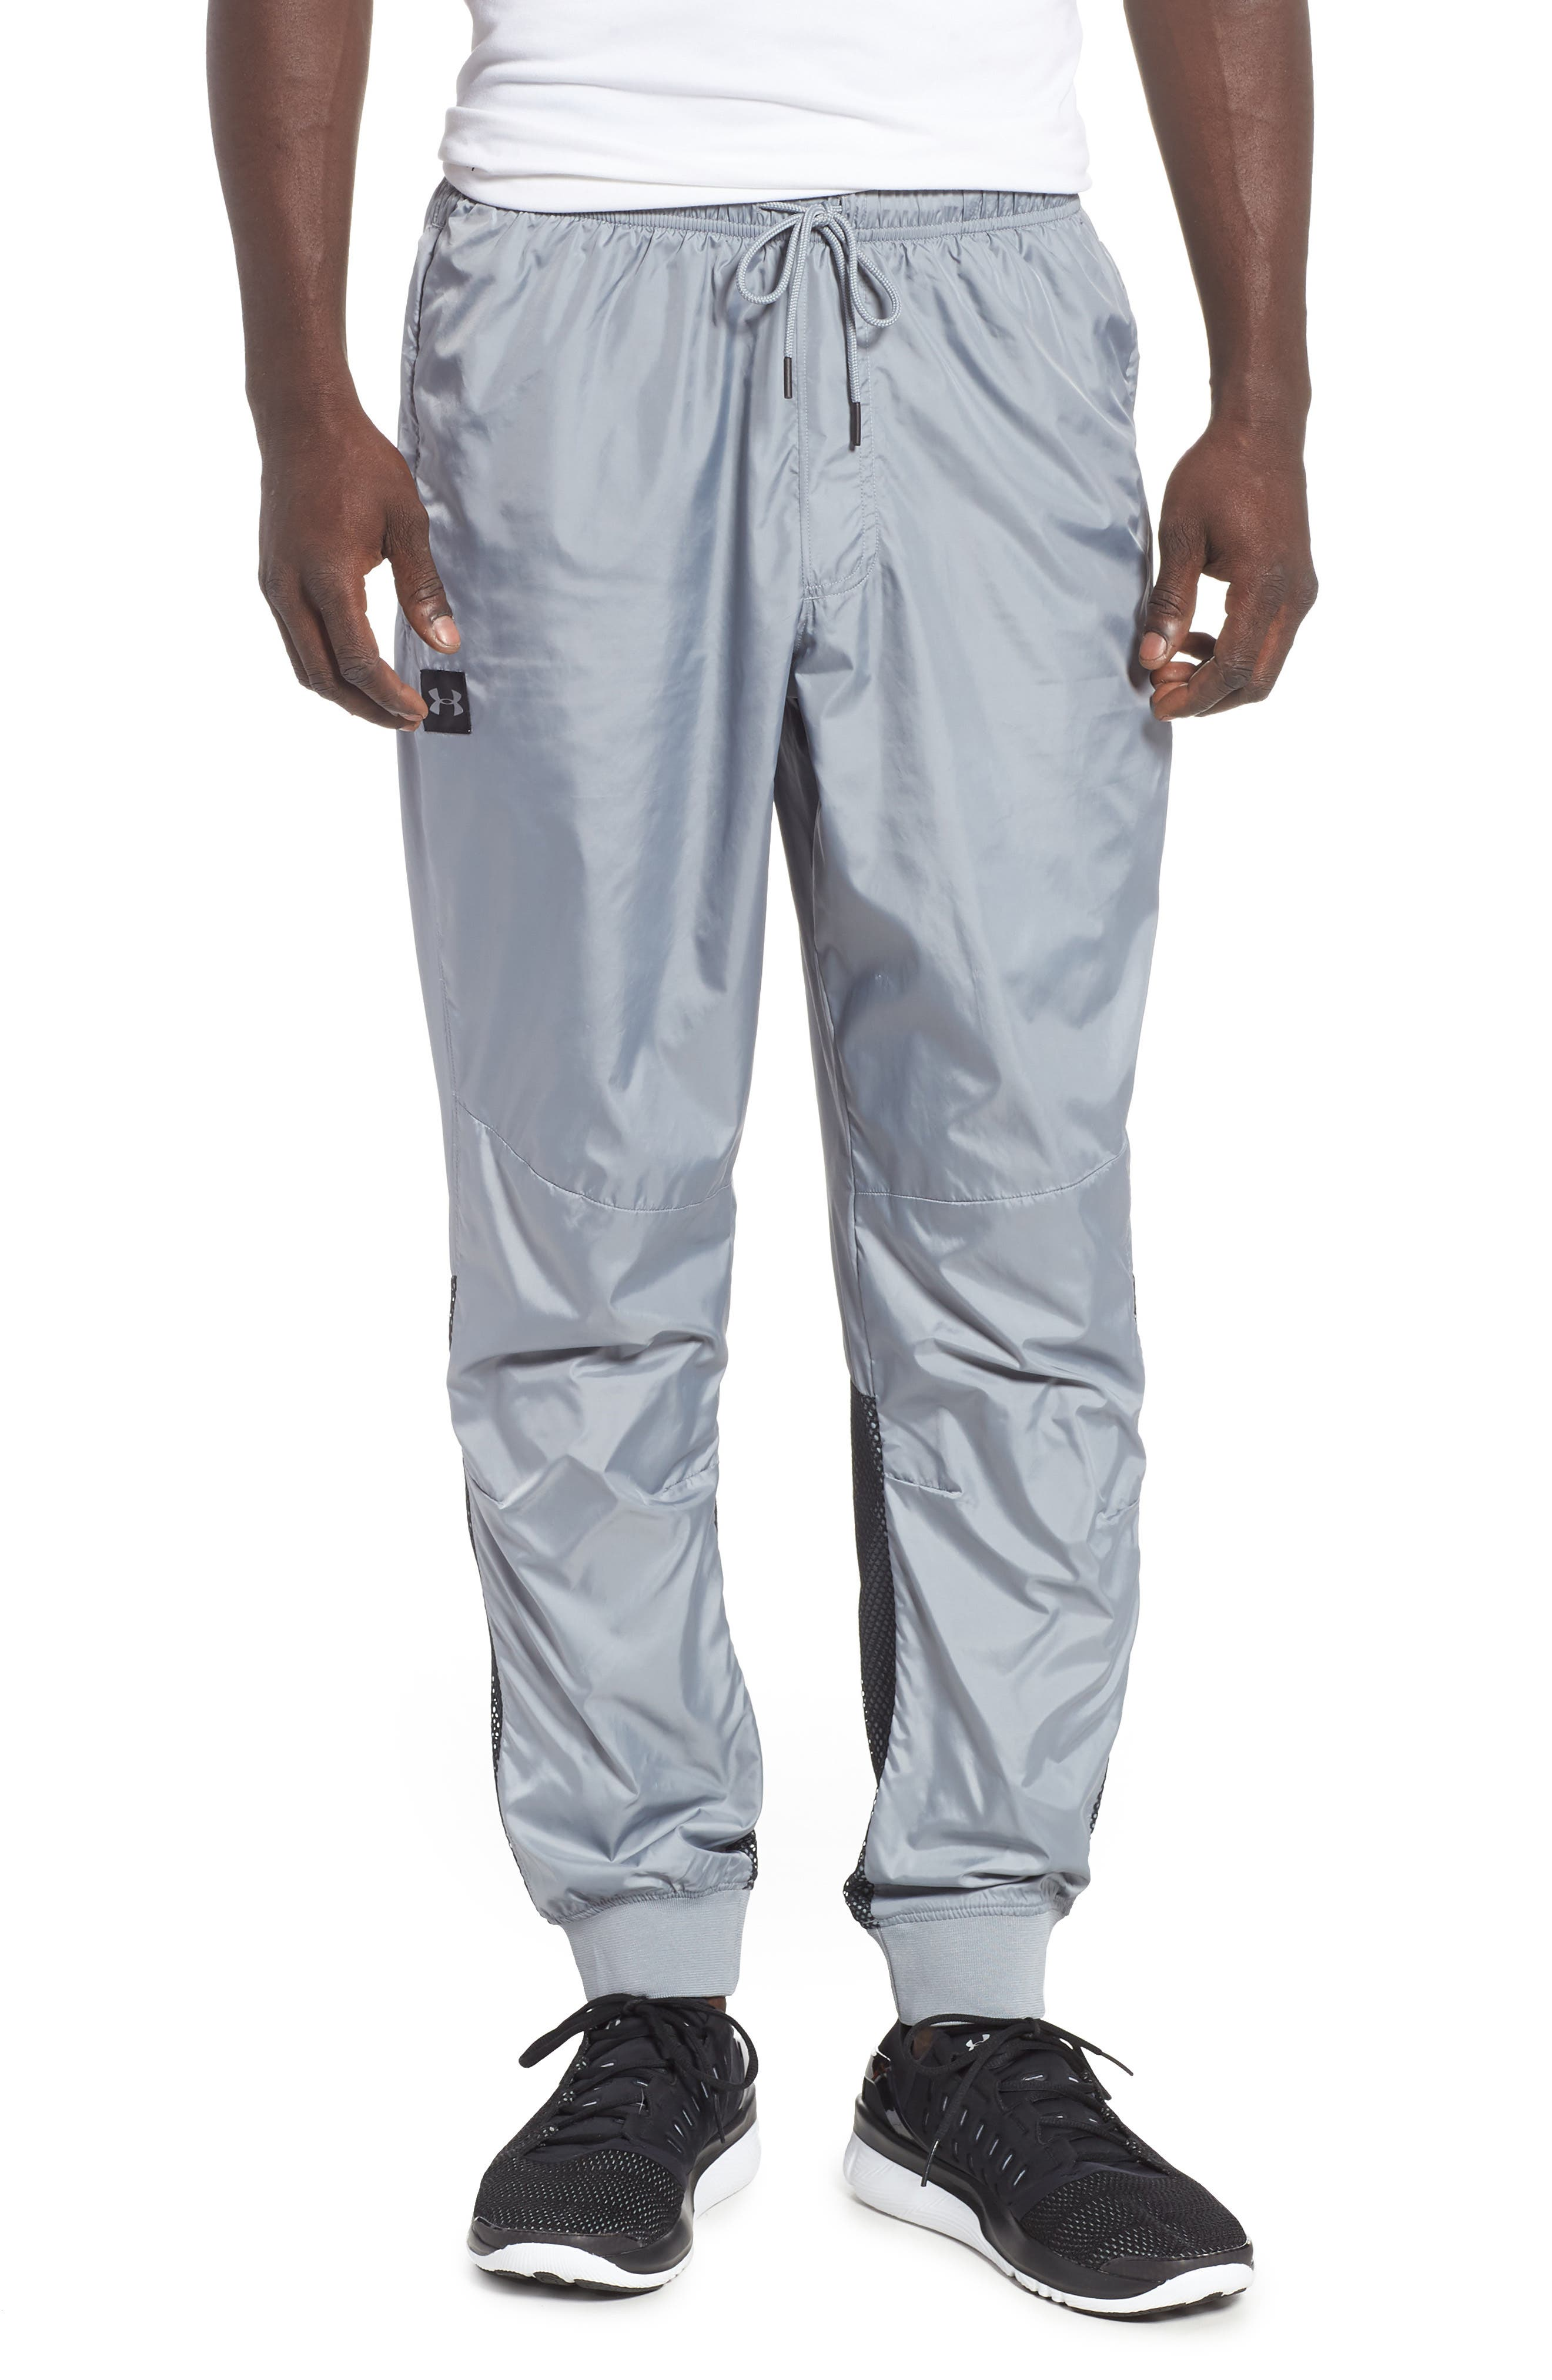 Under Armour Sportstyle Wind Pants, Grey